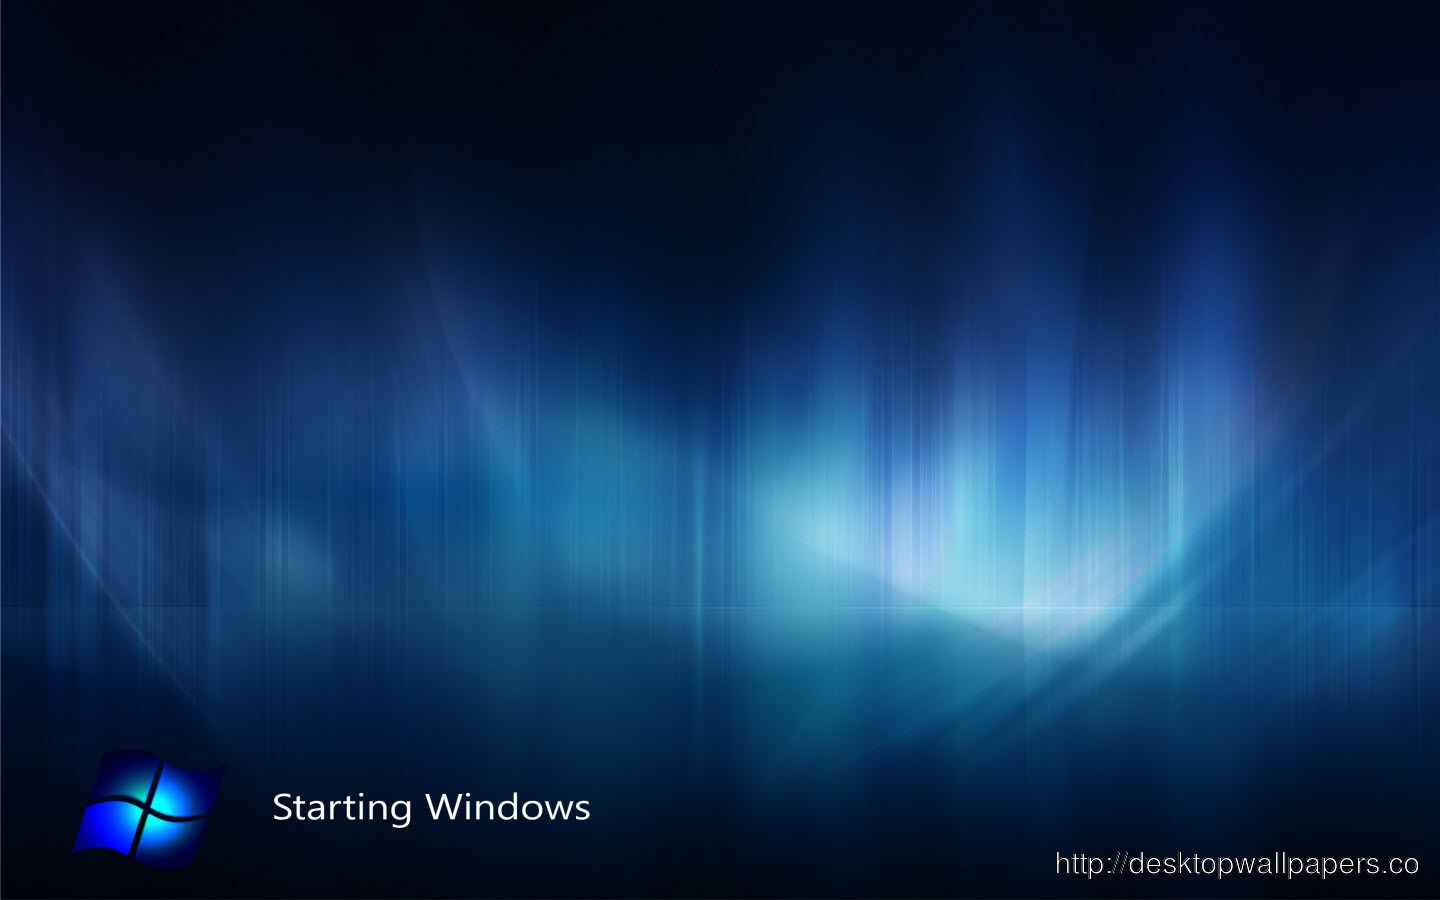 Microsoft Wallpaper   Desktop Wallpapers 1440x900